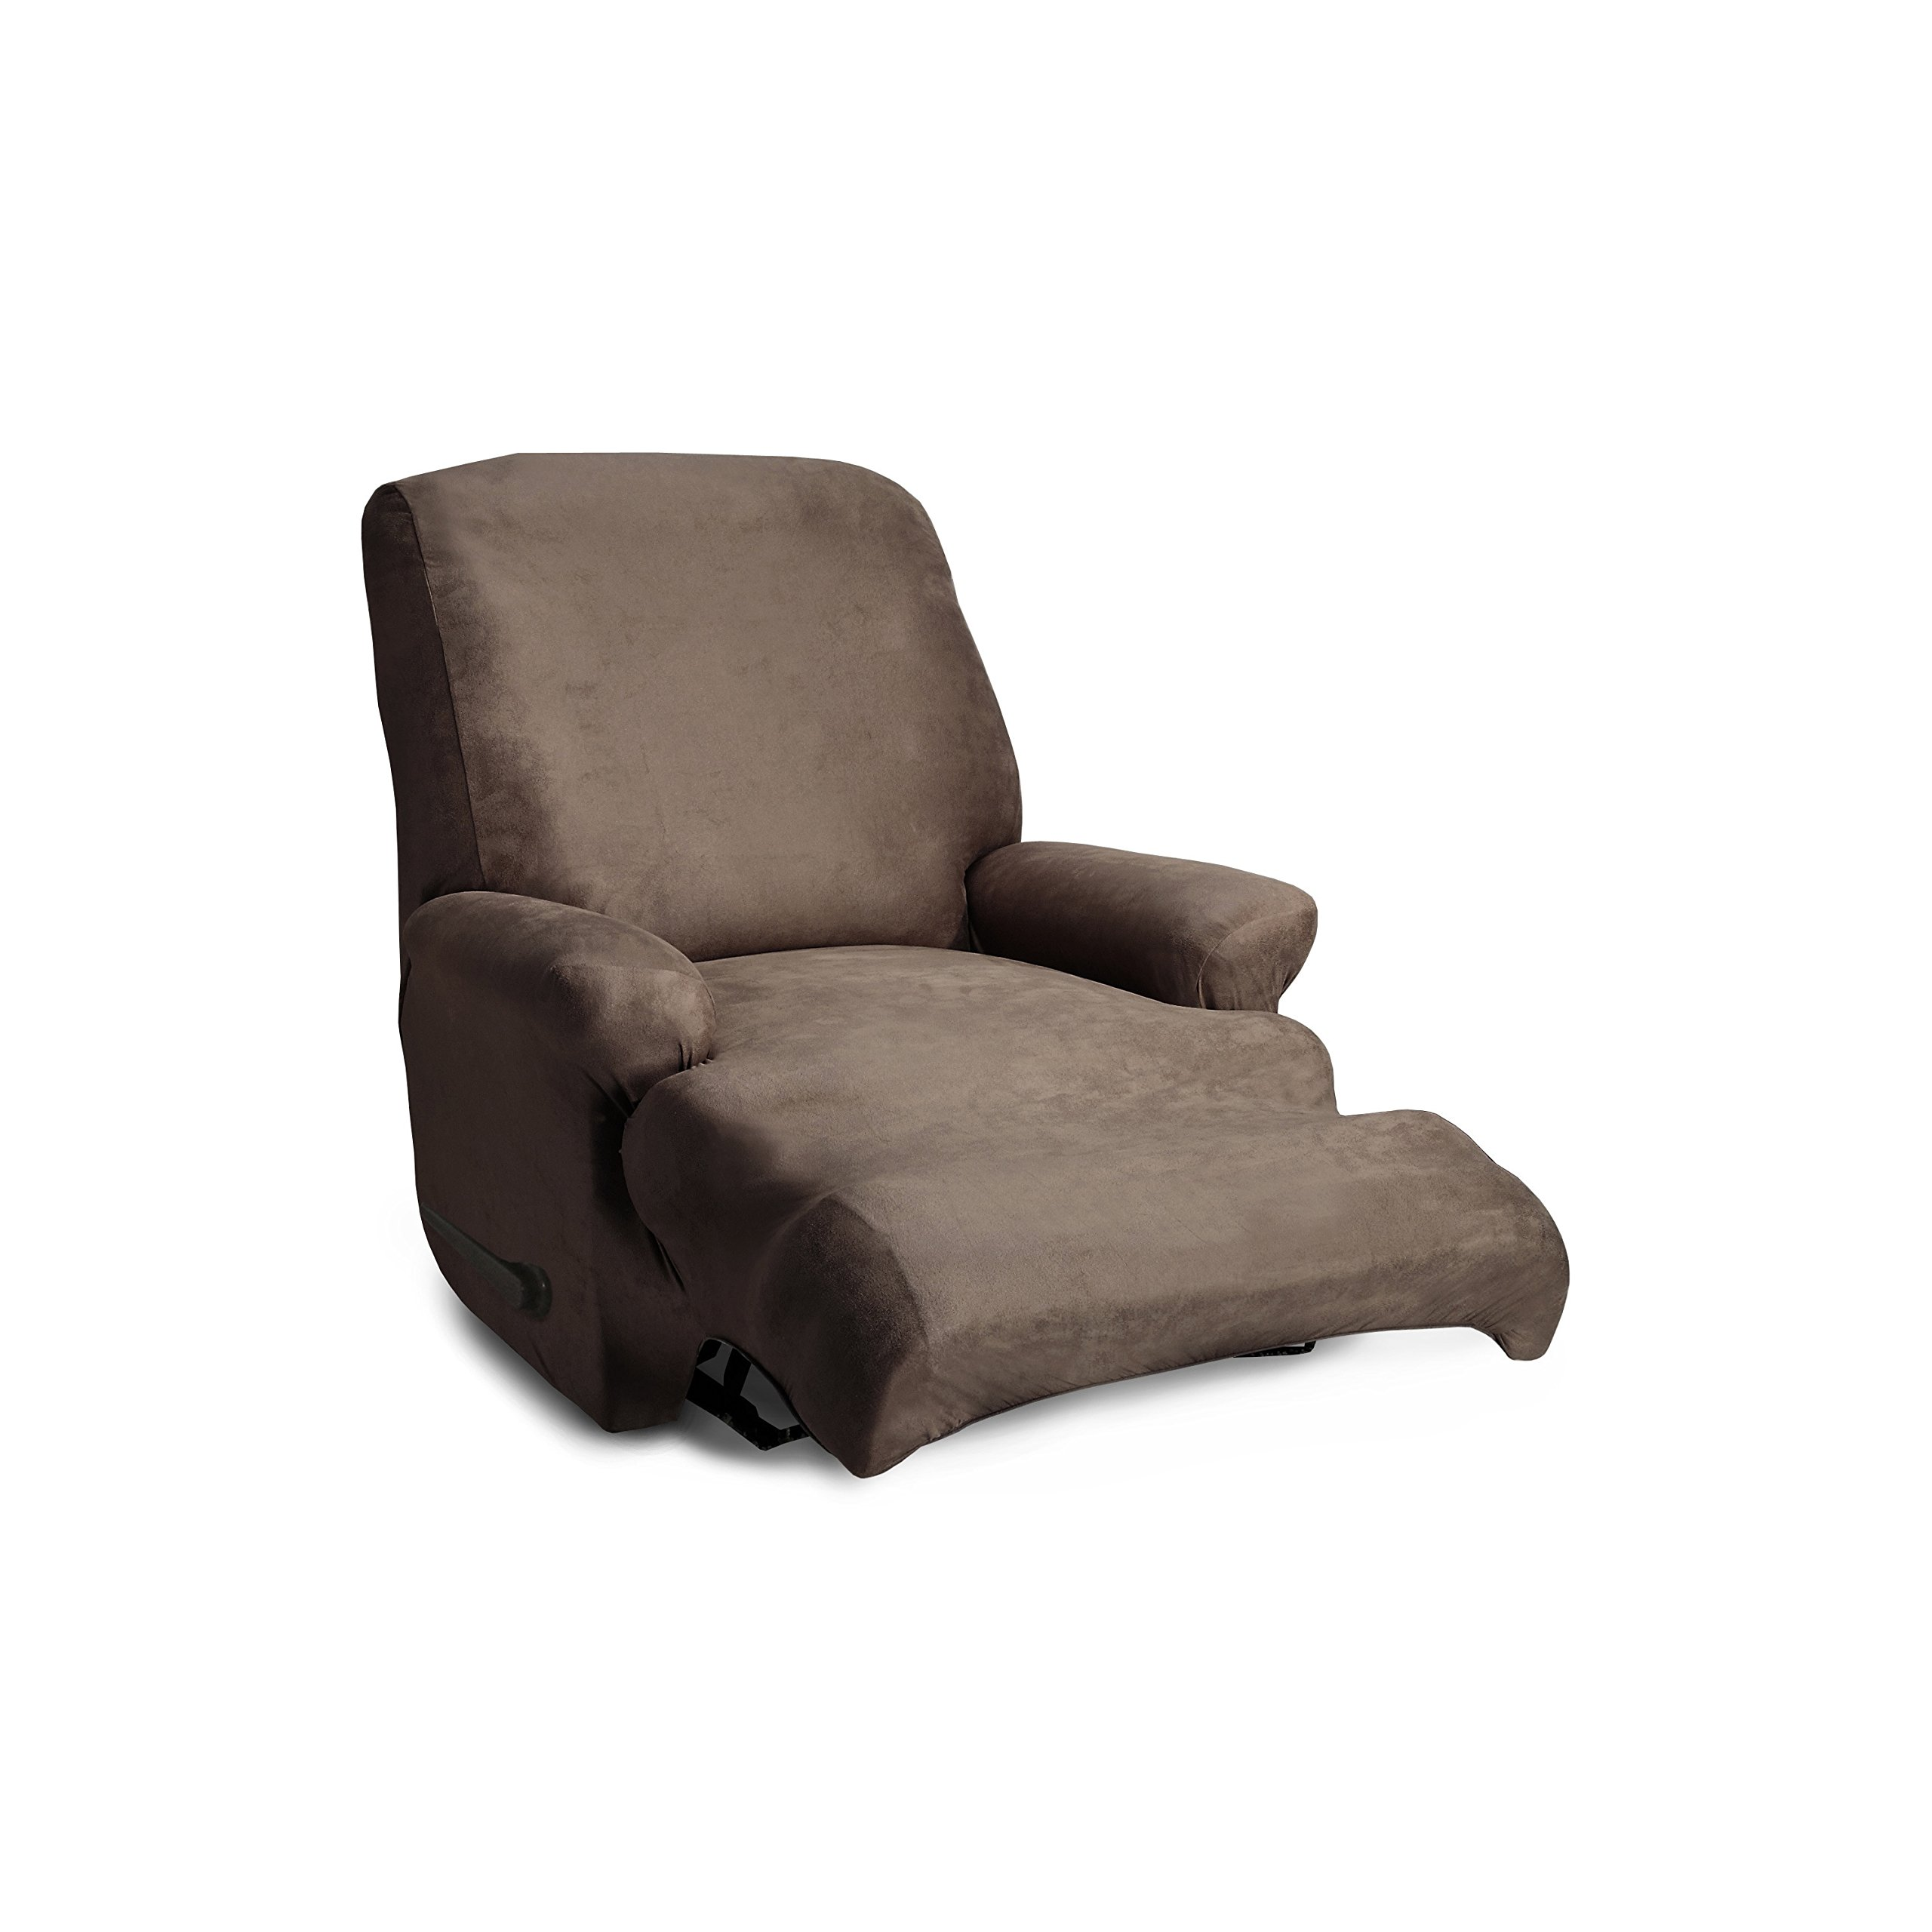 QuickCover Coverworks Brown Stretch Leather 1-piece Classic Recliner Slipcover by QuickCover